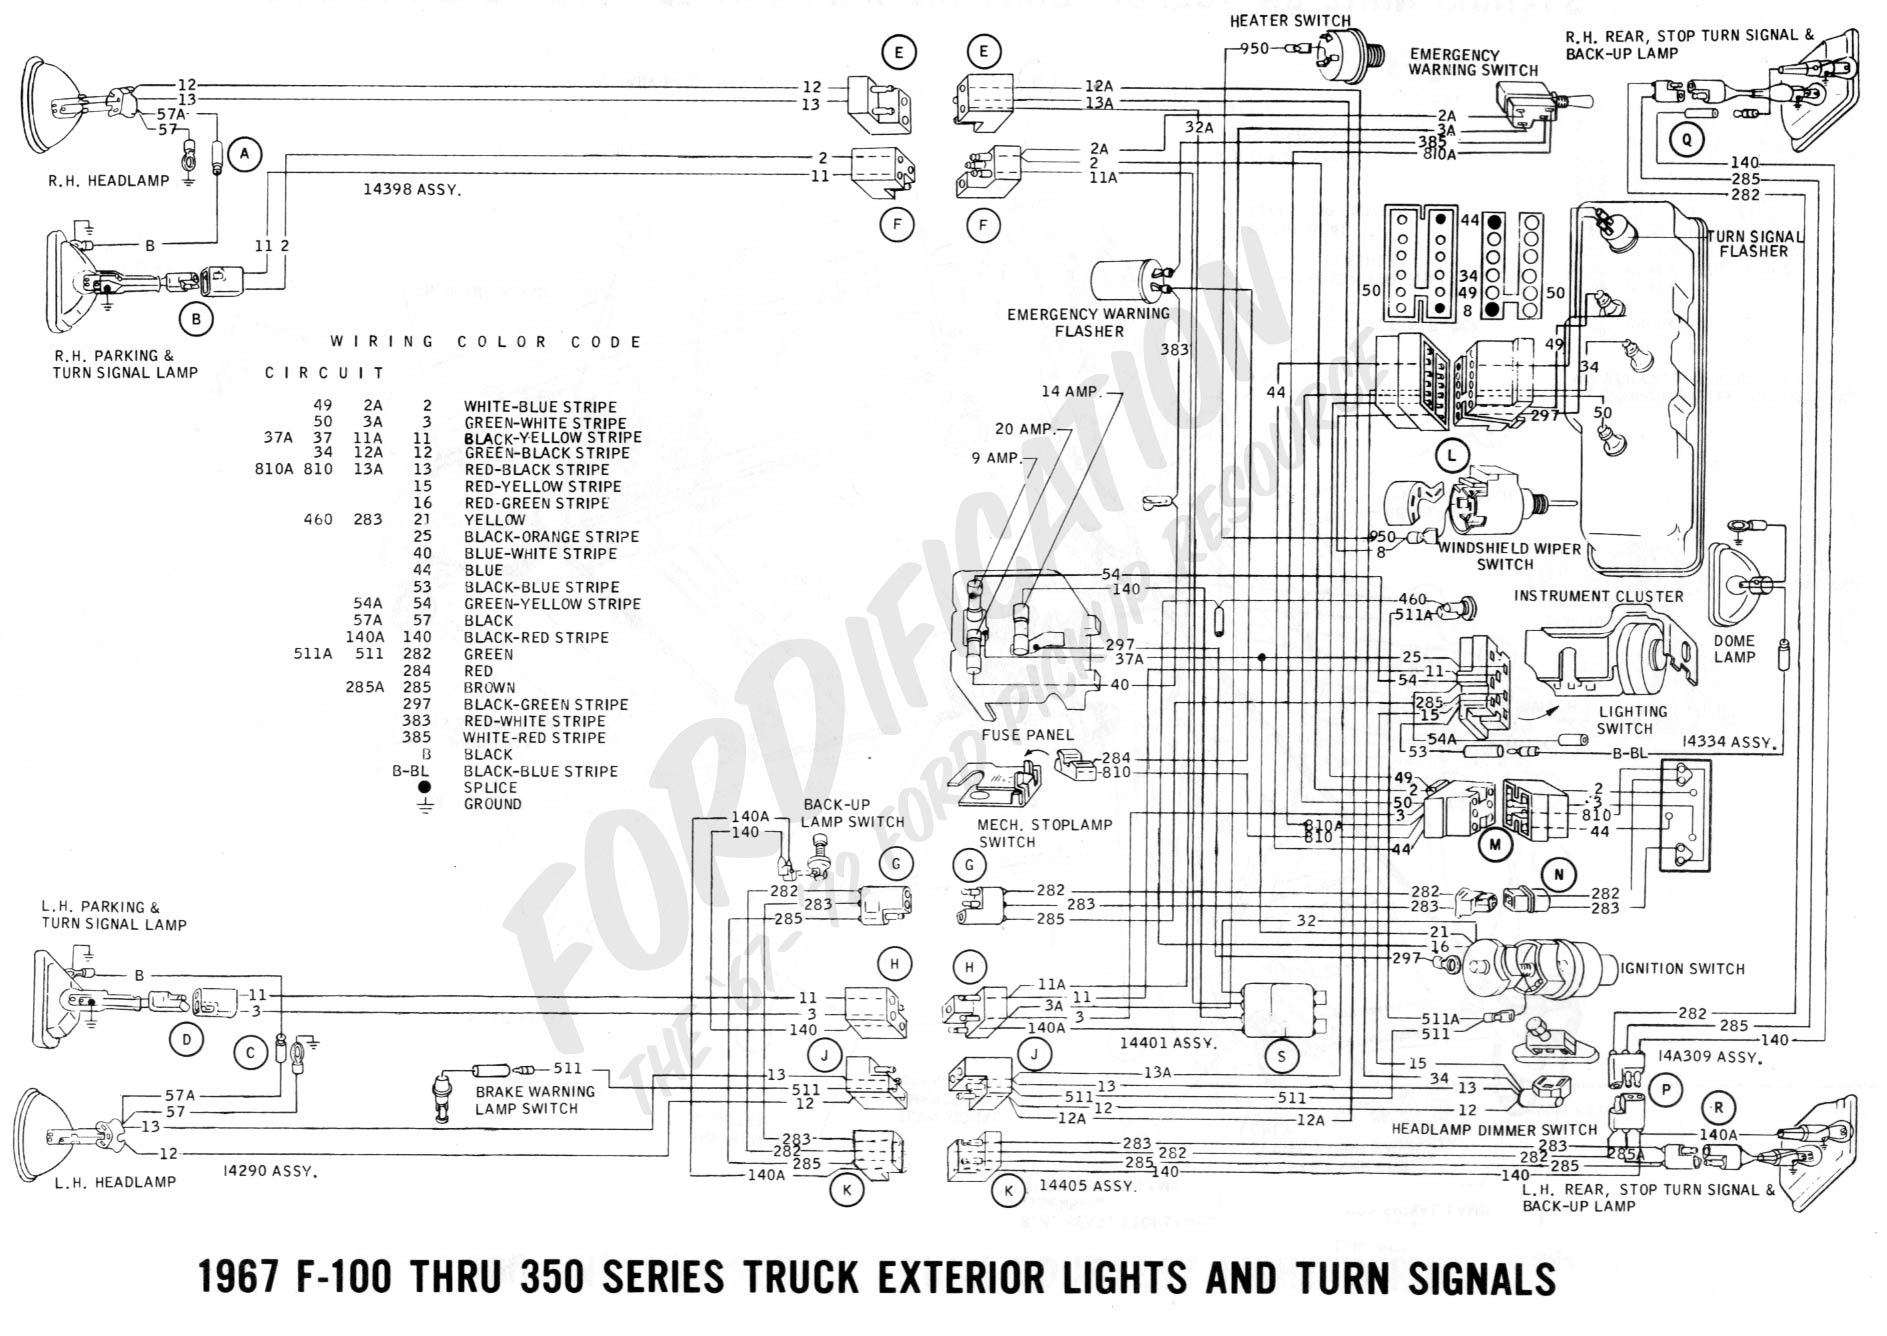 hight resolution of 2002 ford e 450 wiring diagram wiring library92 mustang turn signal wiring diagram detailed schematics diagram